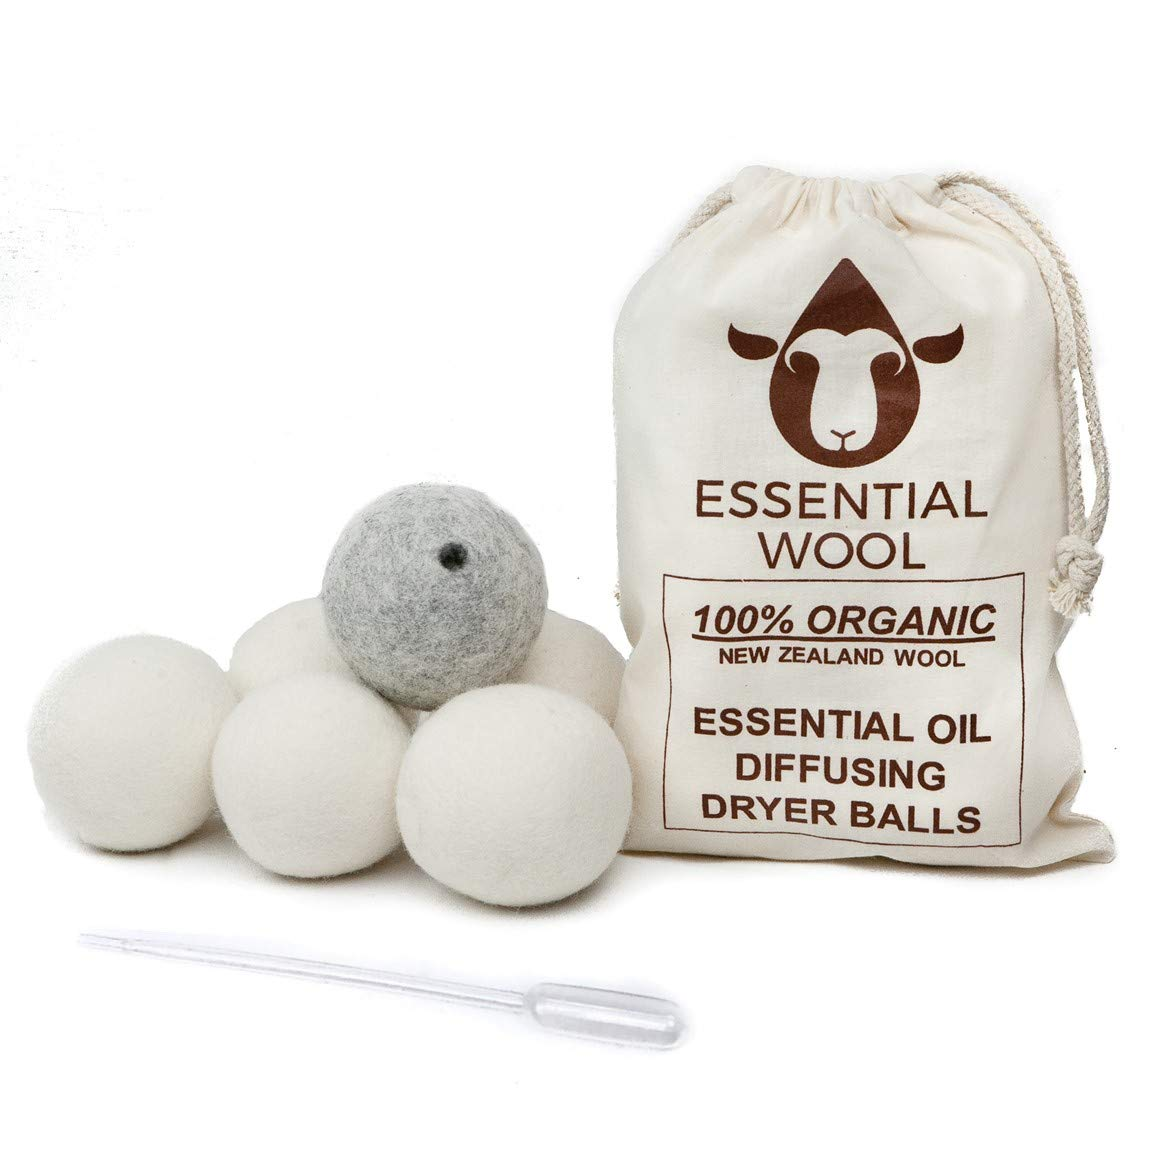 Wool Dryer Balls - Made for Essential Oils 6-Pack, Organic Reusable Natural Aromatherapy Diffuser Clothes Laundry Fabric Softener by Essential Wool